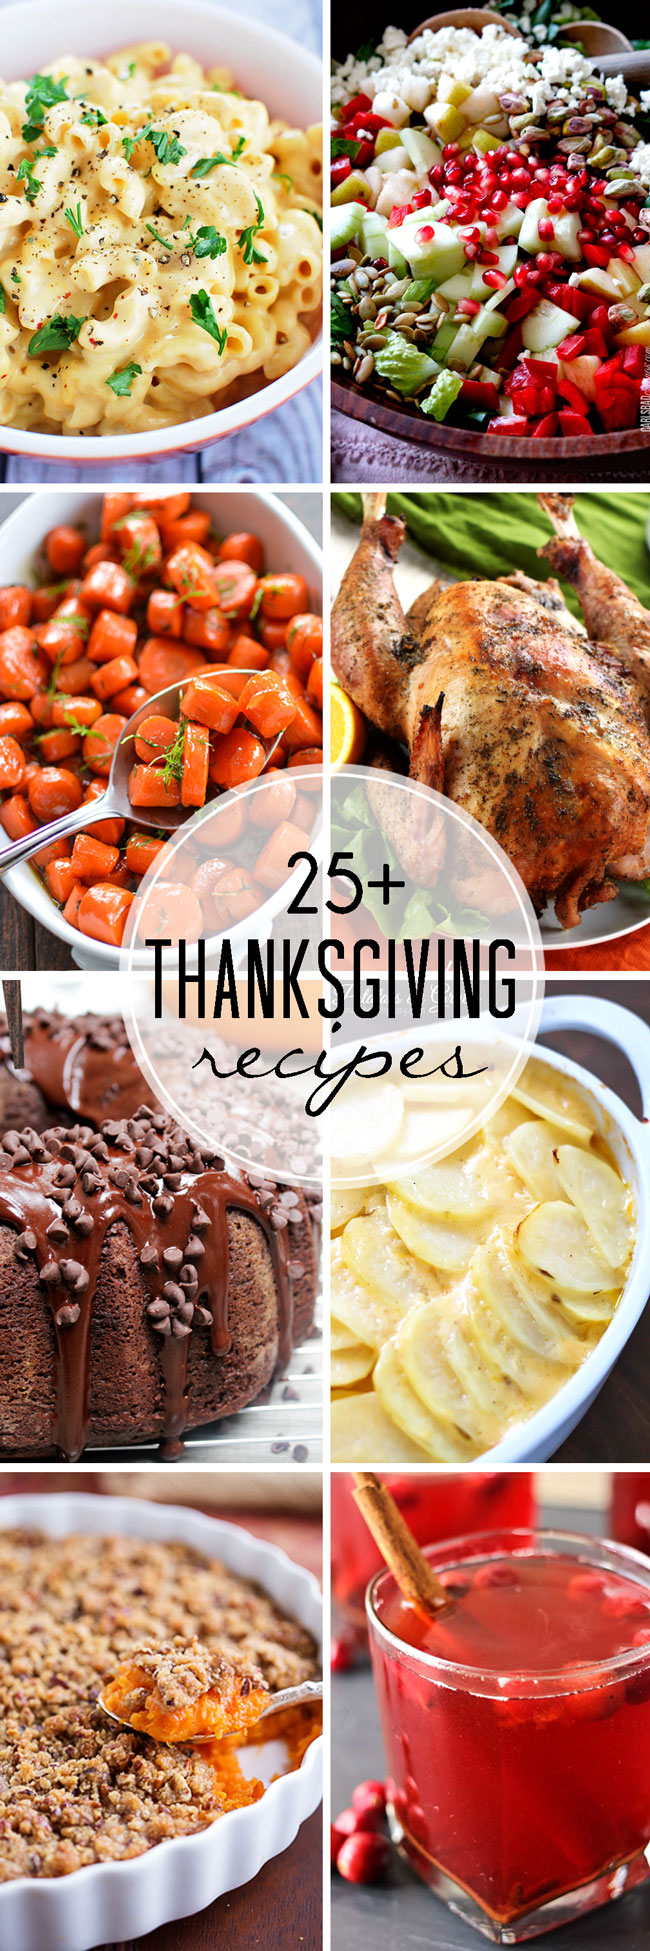 25+ Thanksgiving Recipes: a helpful guide to planning your Thanksgiving dinner!